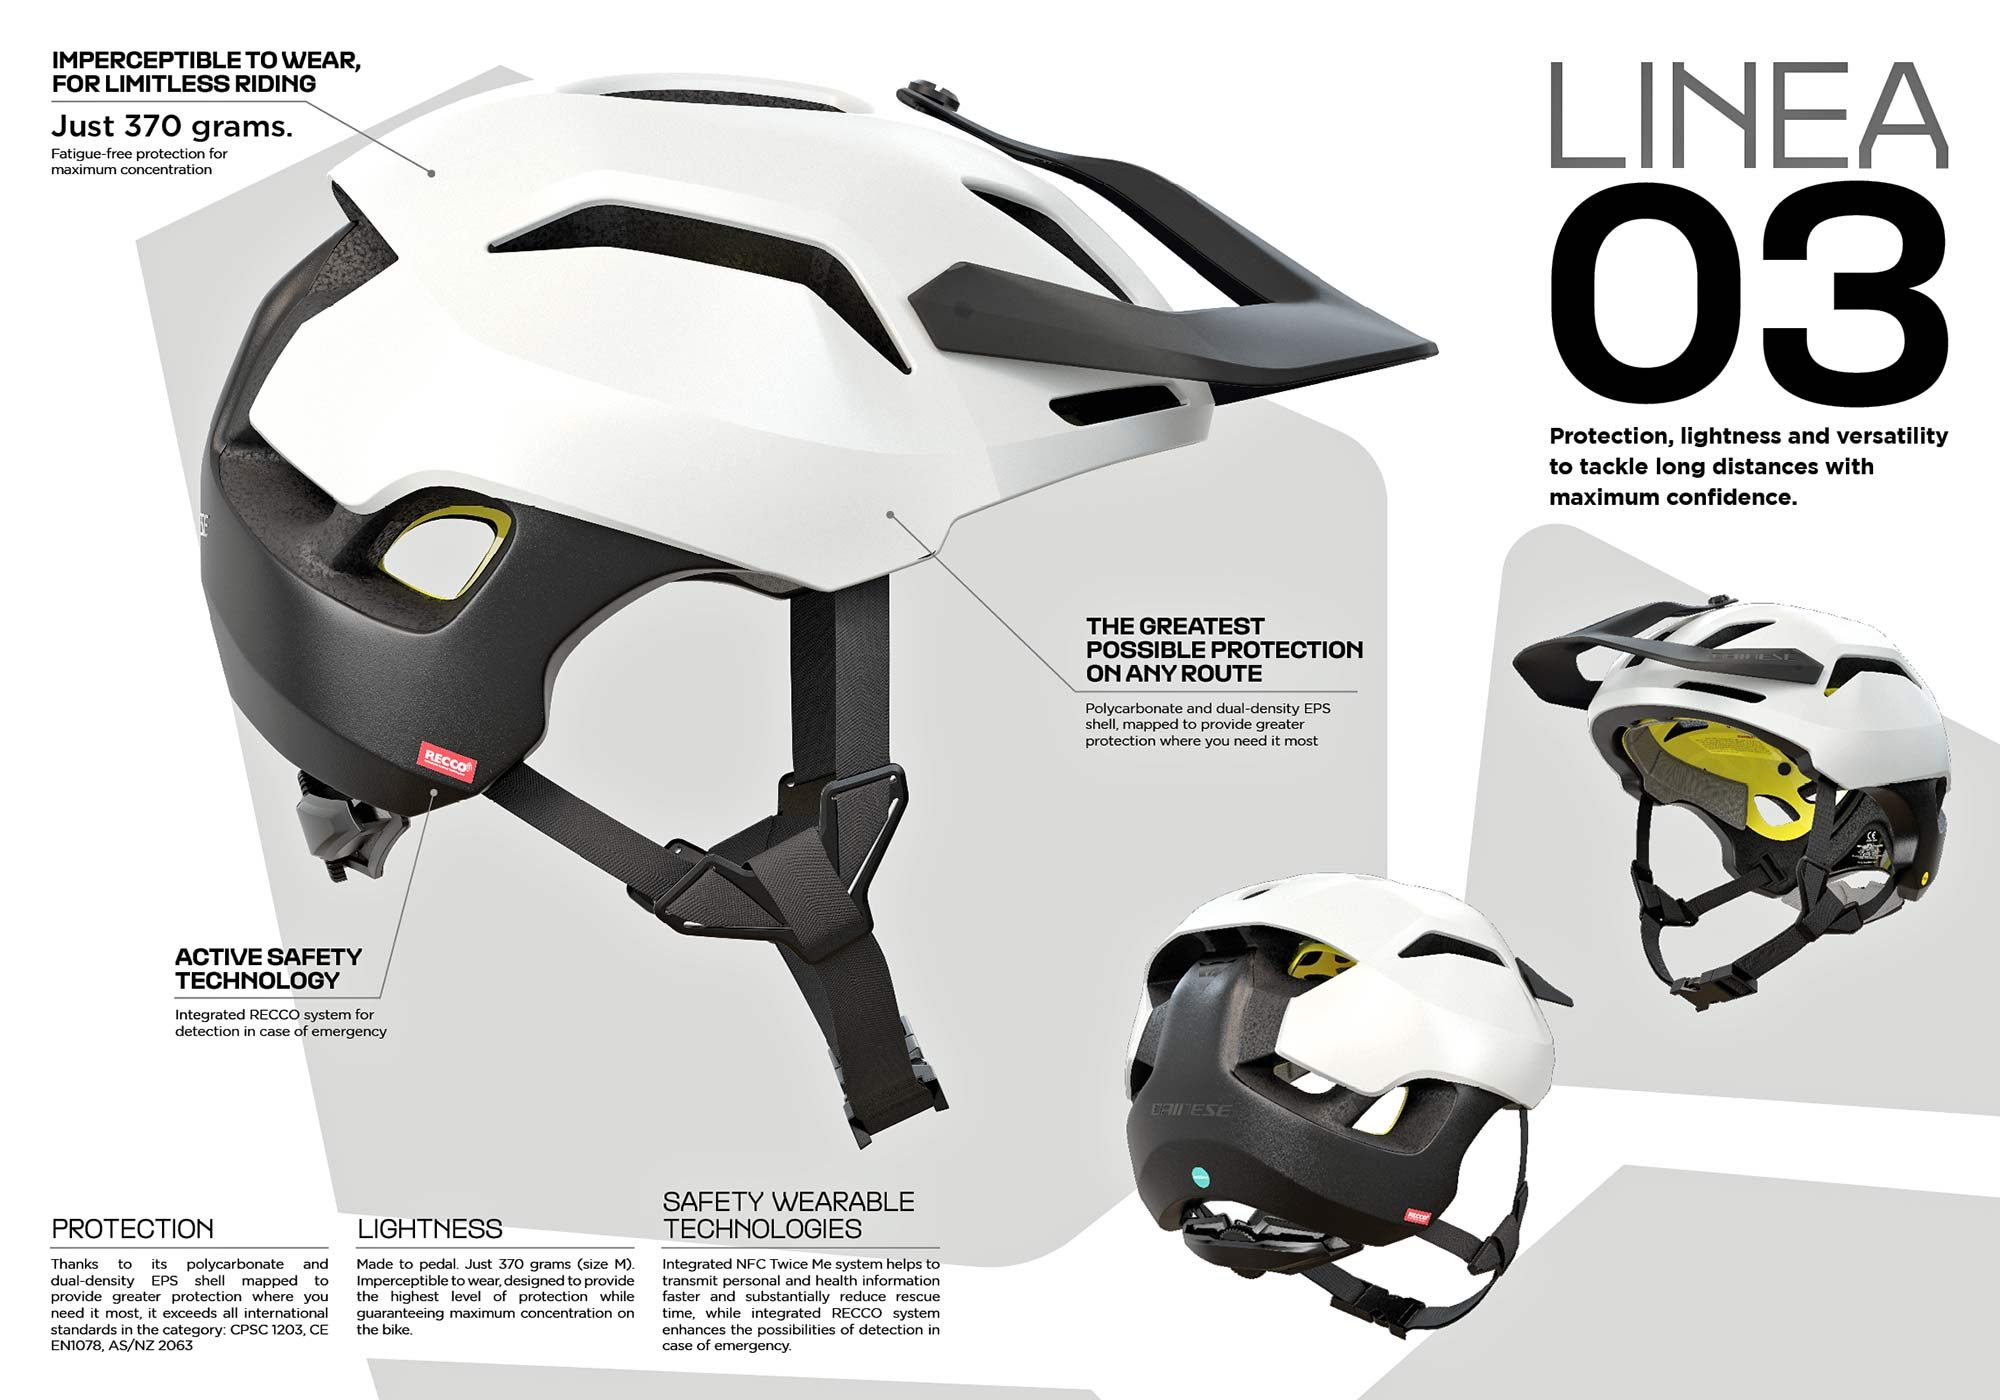 Dainese Linea 03 trail bike half shell helmet, lightweight MIPS Recco MTB protection at 370g, details